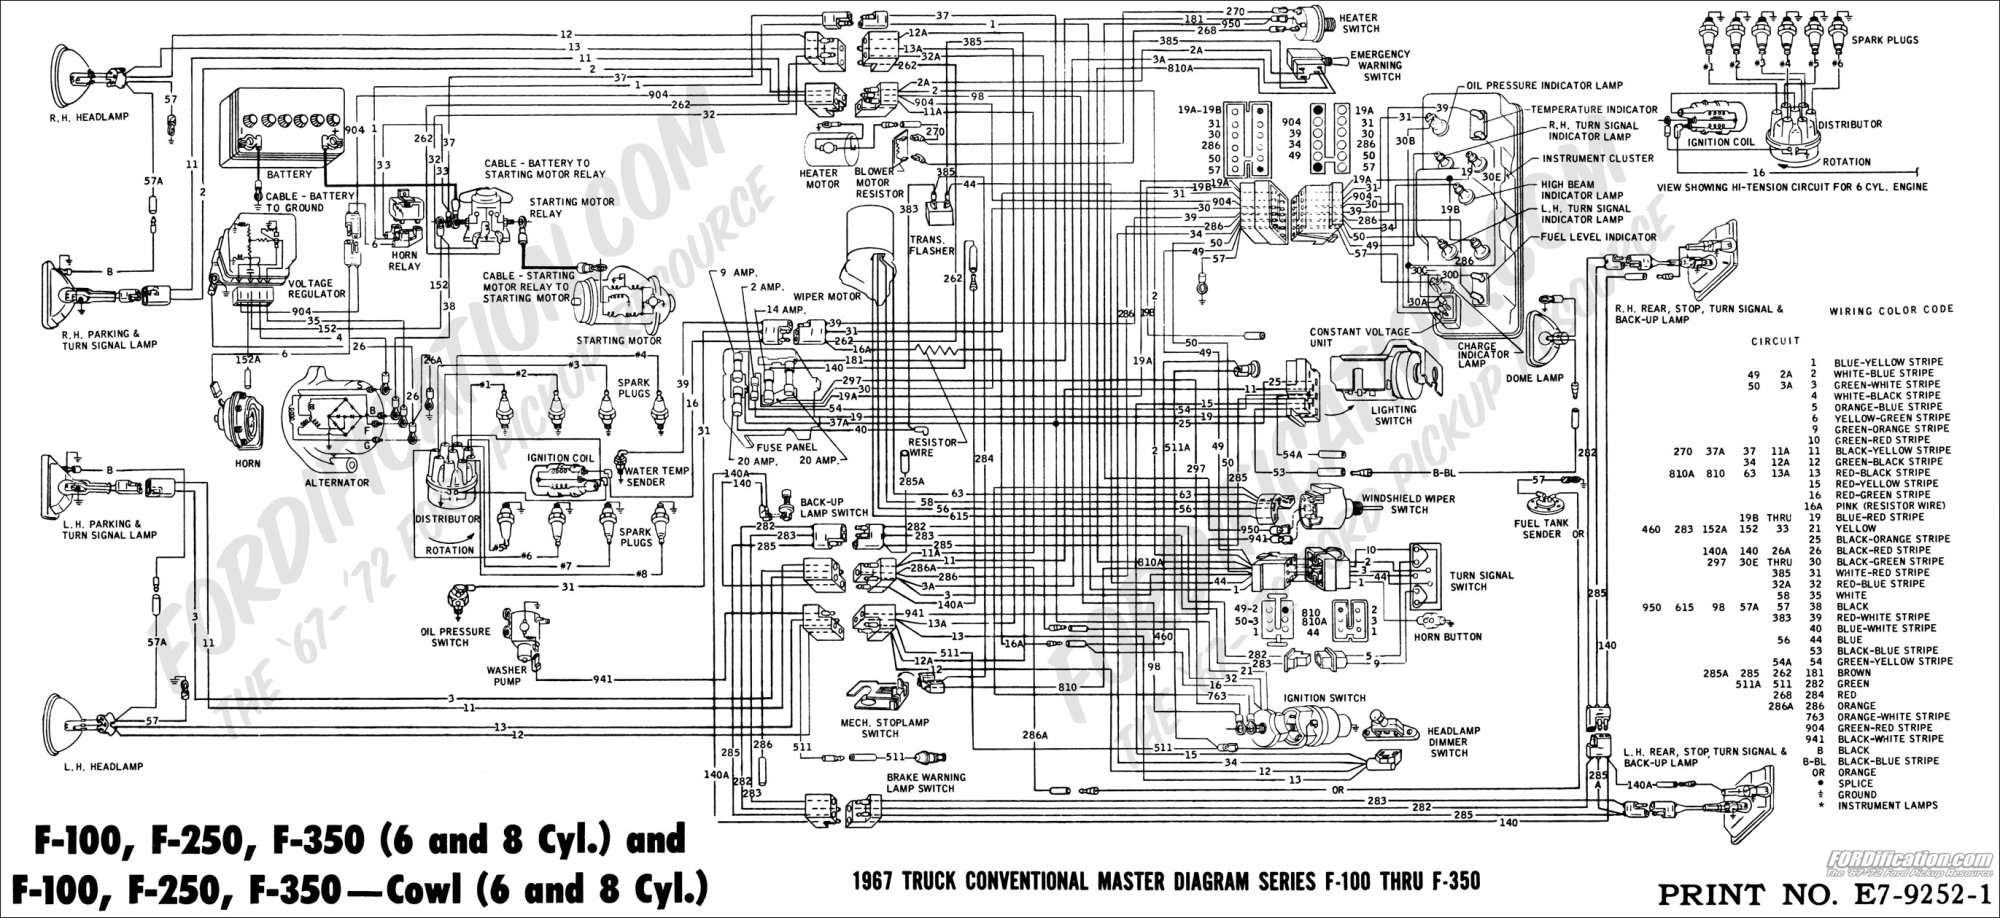 hight resolution of 1997 ford f 150 transmission wiring harness wiring diagram used 1997 ford f 150 transmission wiring harness diagram